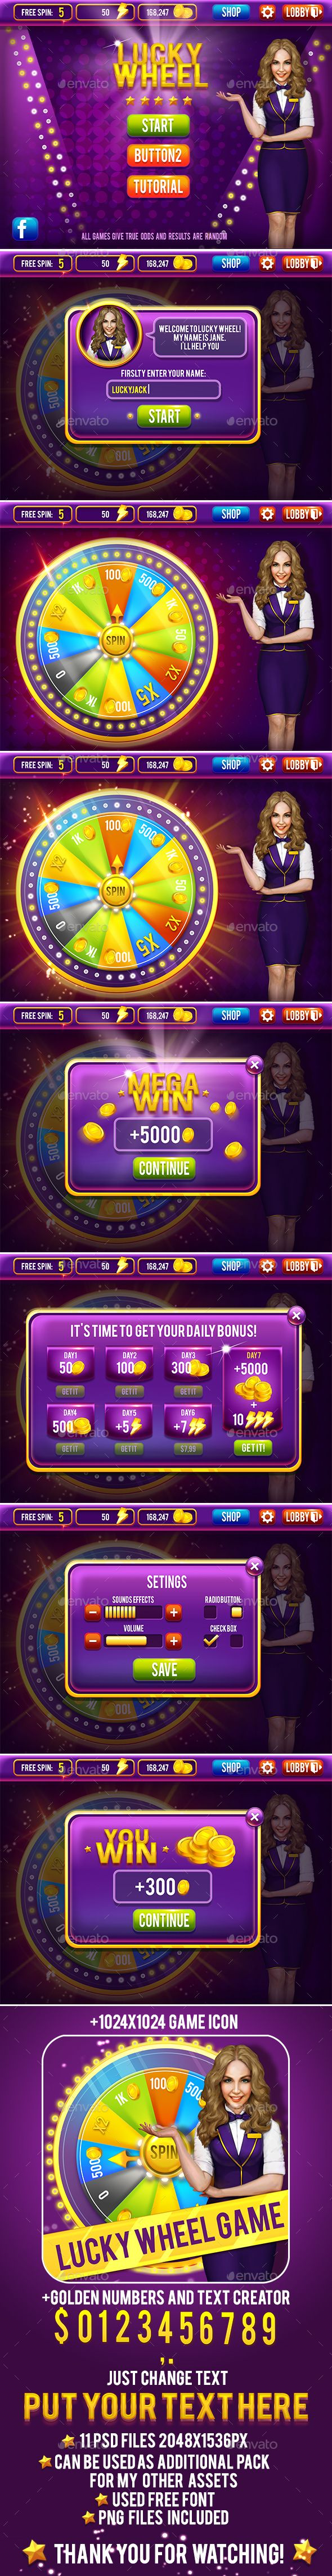 Casino Lucky Wheel Game Pack - Game Kits Game Assets